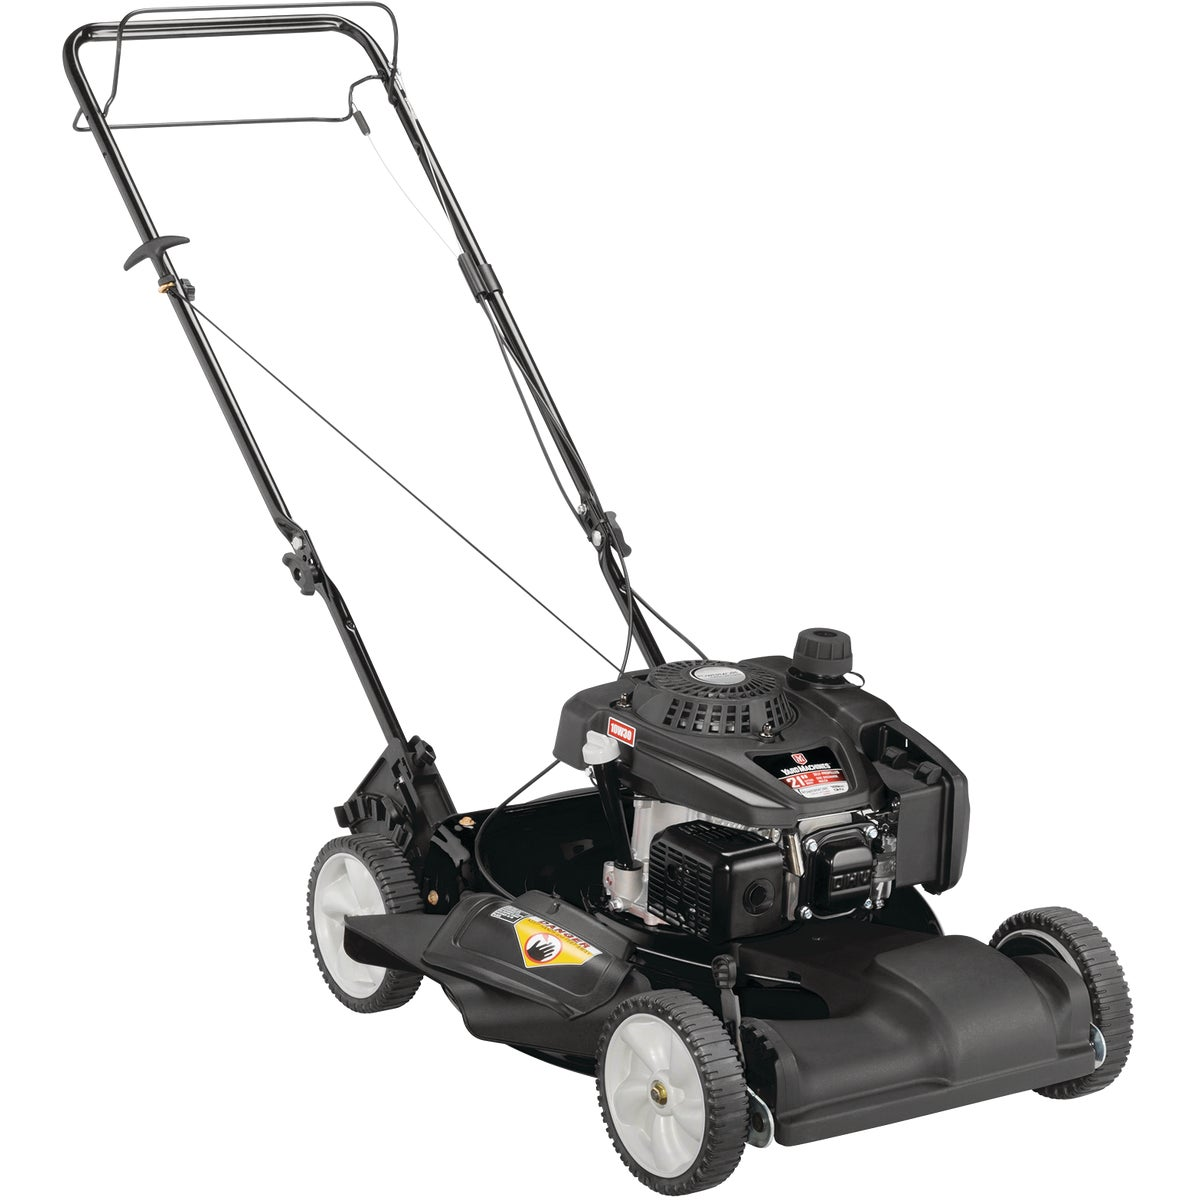 "21"" SELF PROPELLED MOWER - 12A-A02J700 by M T D Products"